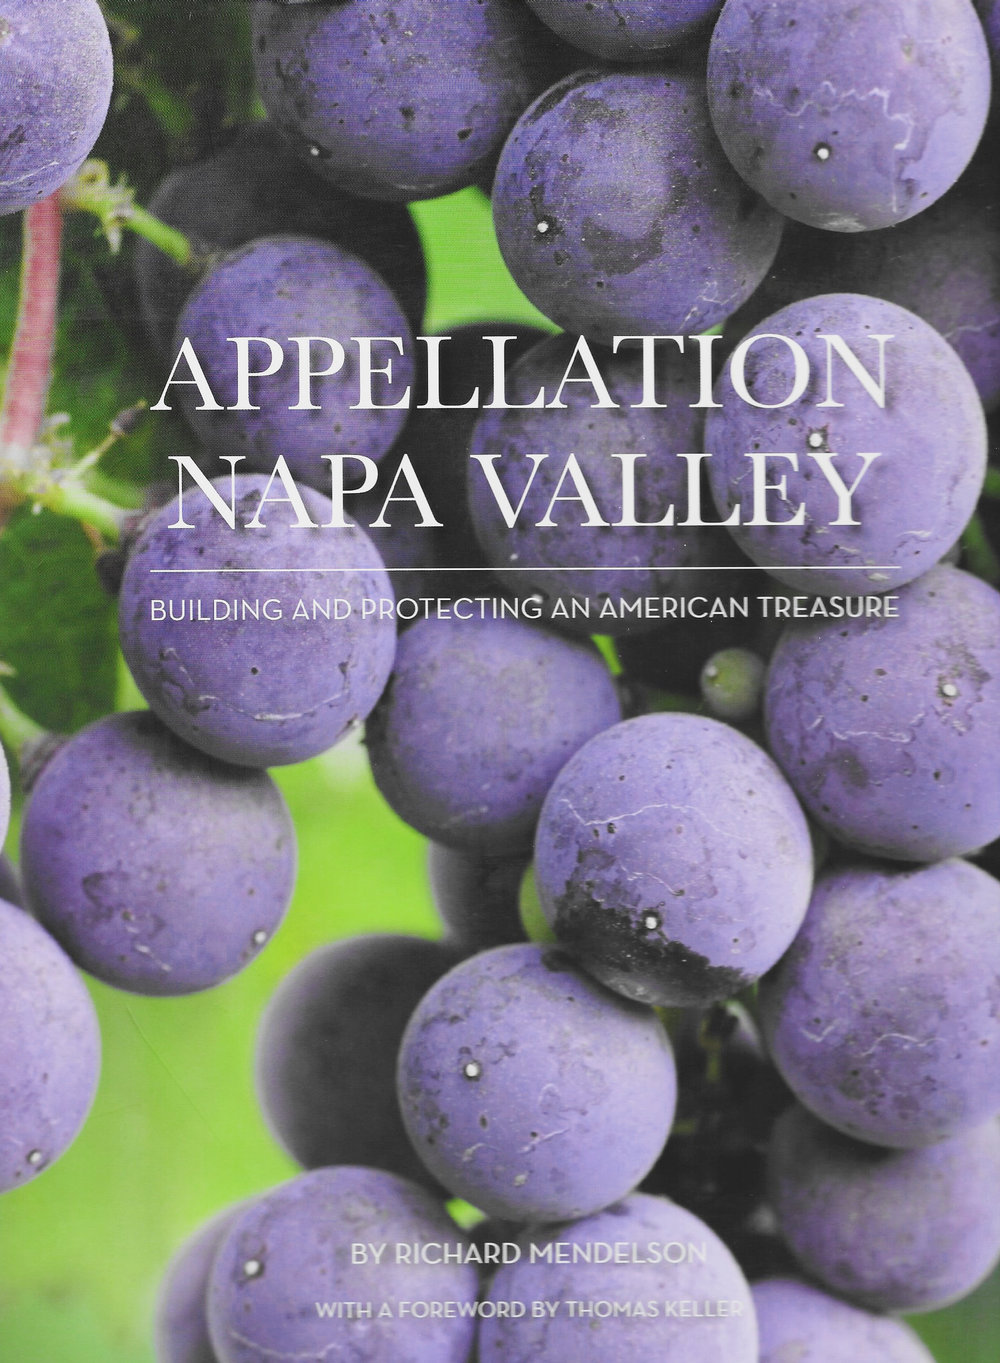 Cover-Appellation Napa Valley.jpg